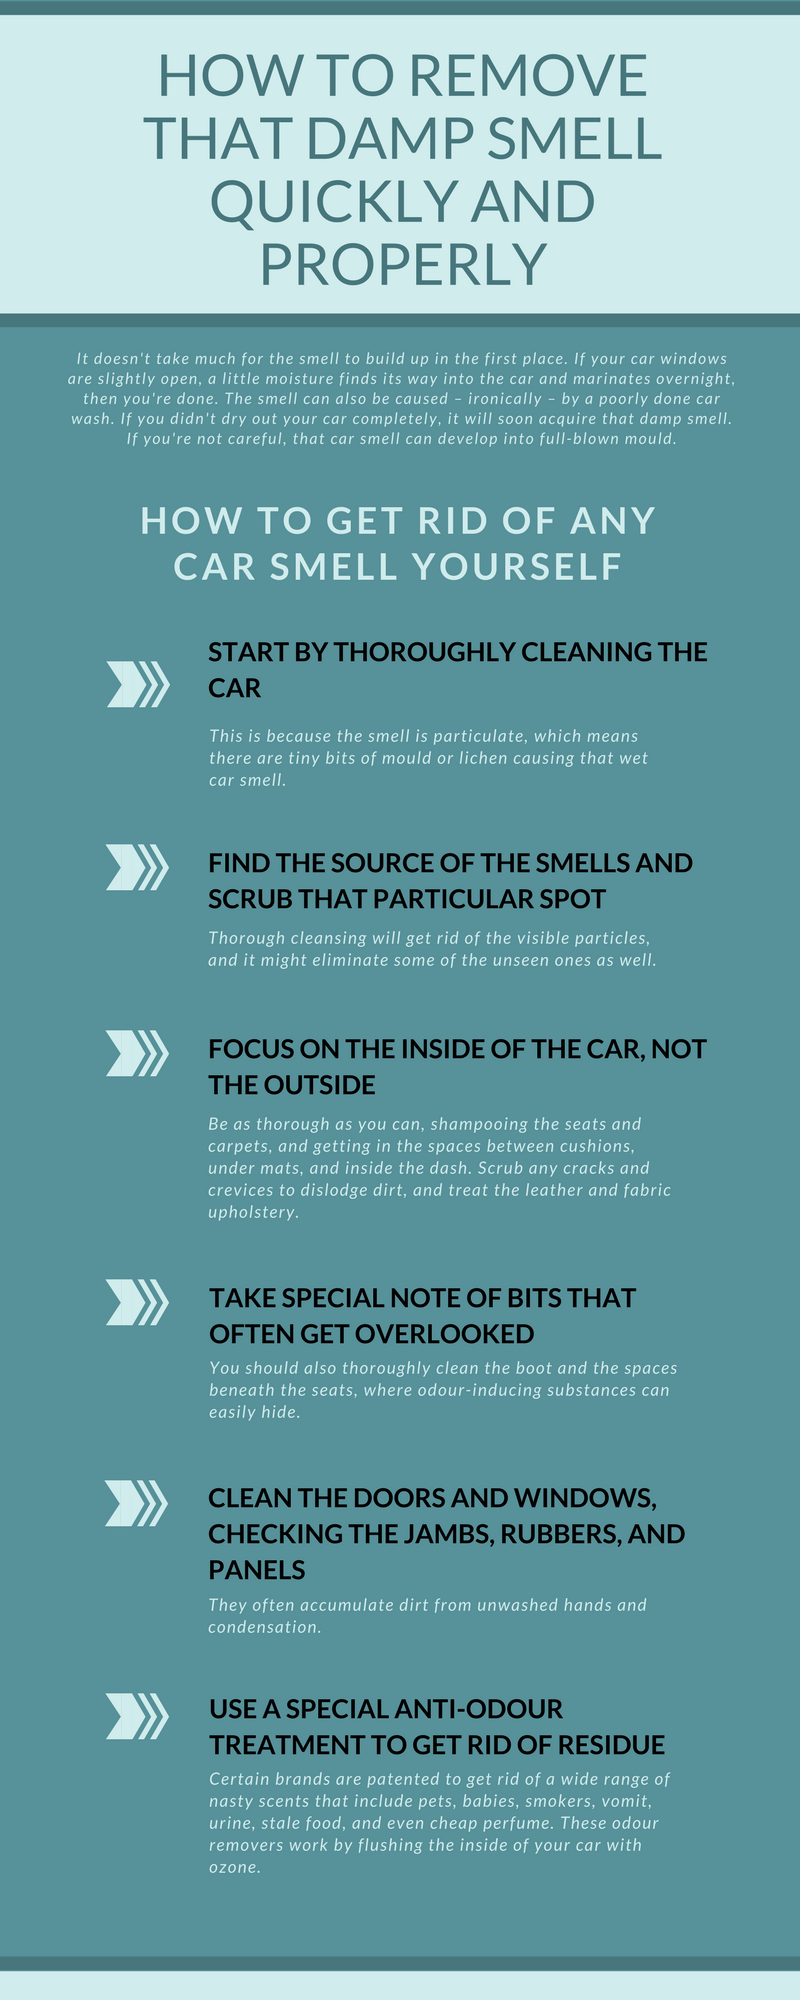 techniques to remove damp smell properly from your car